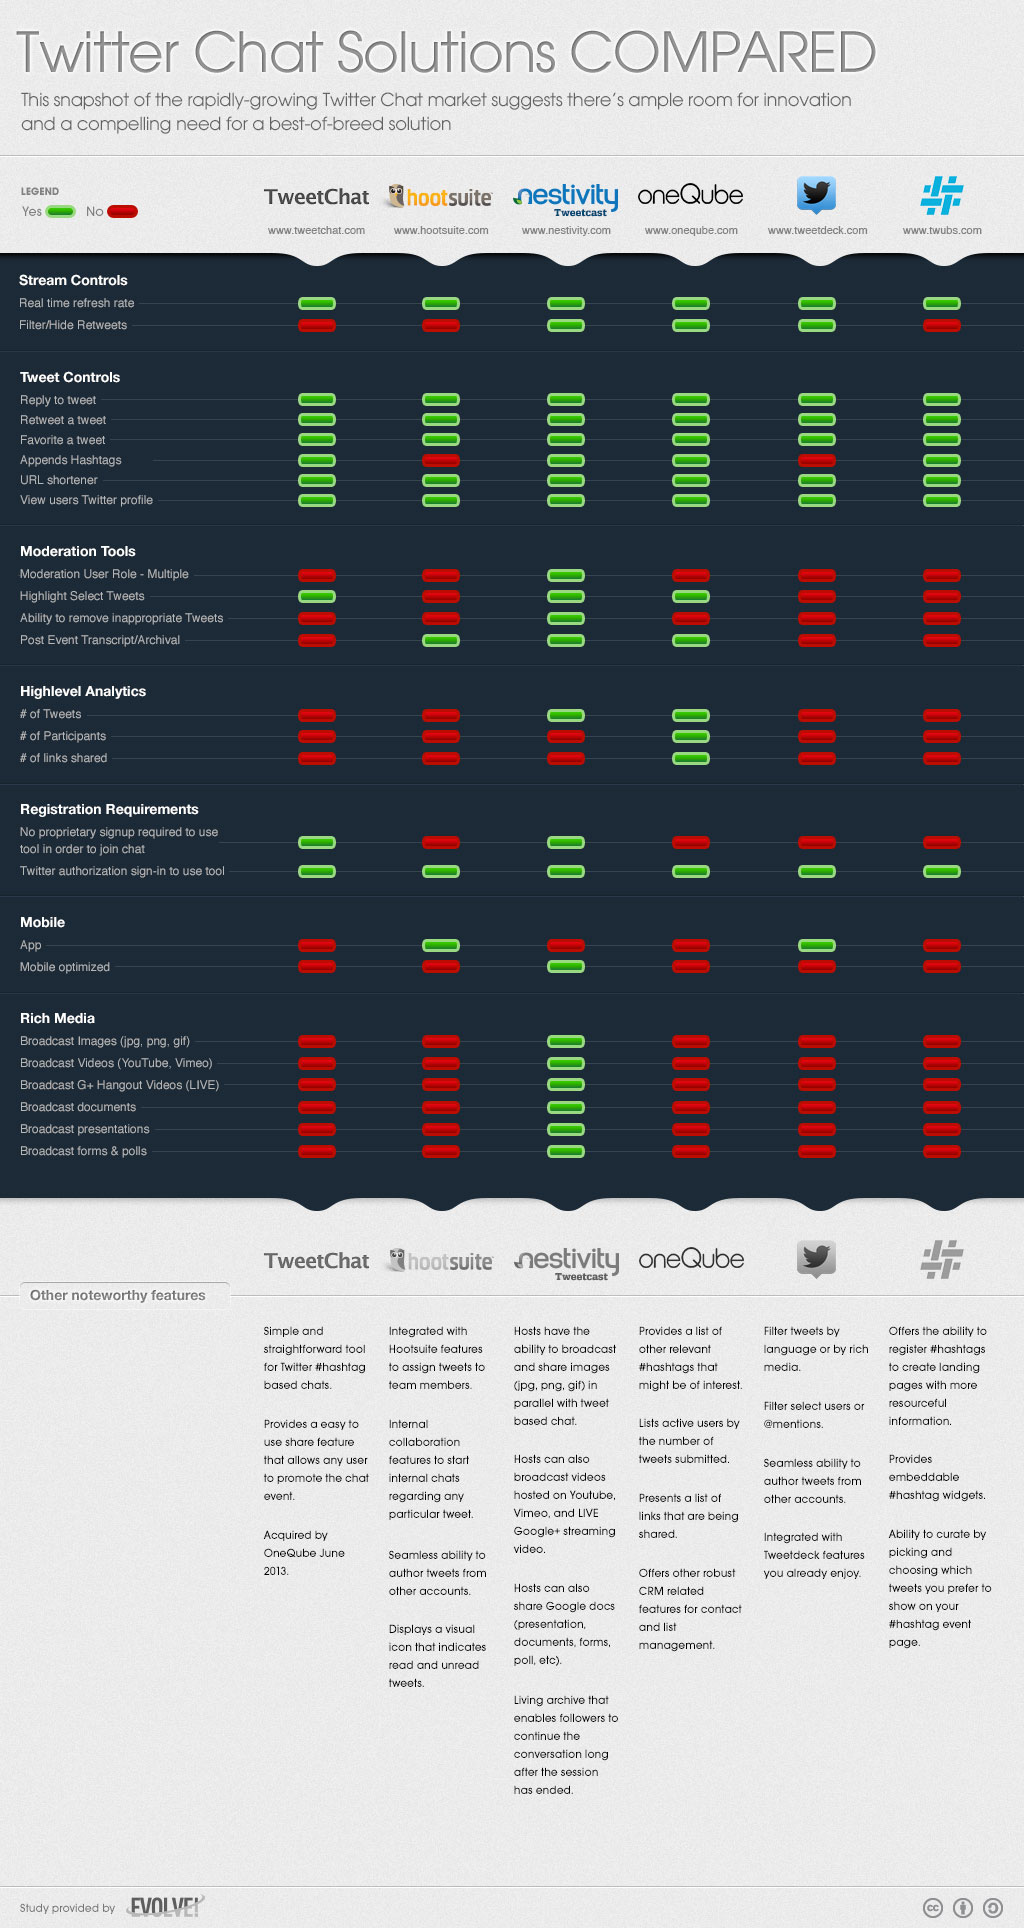 twitter-chat-options-compared-infographic